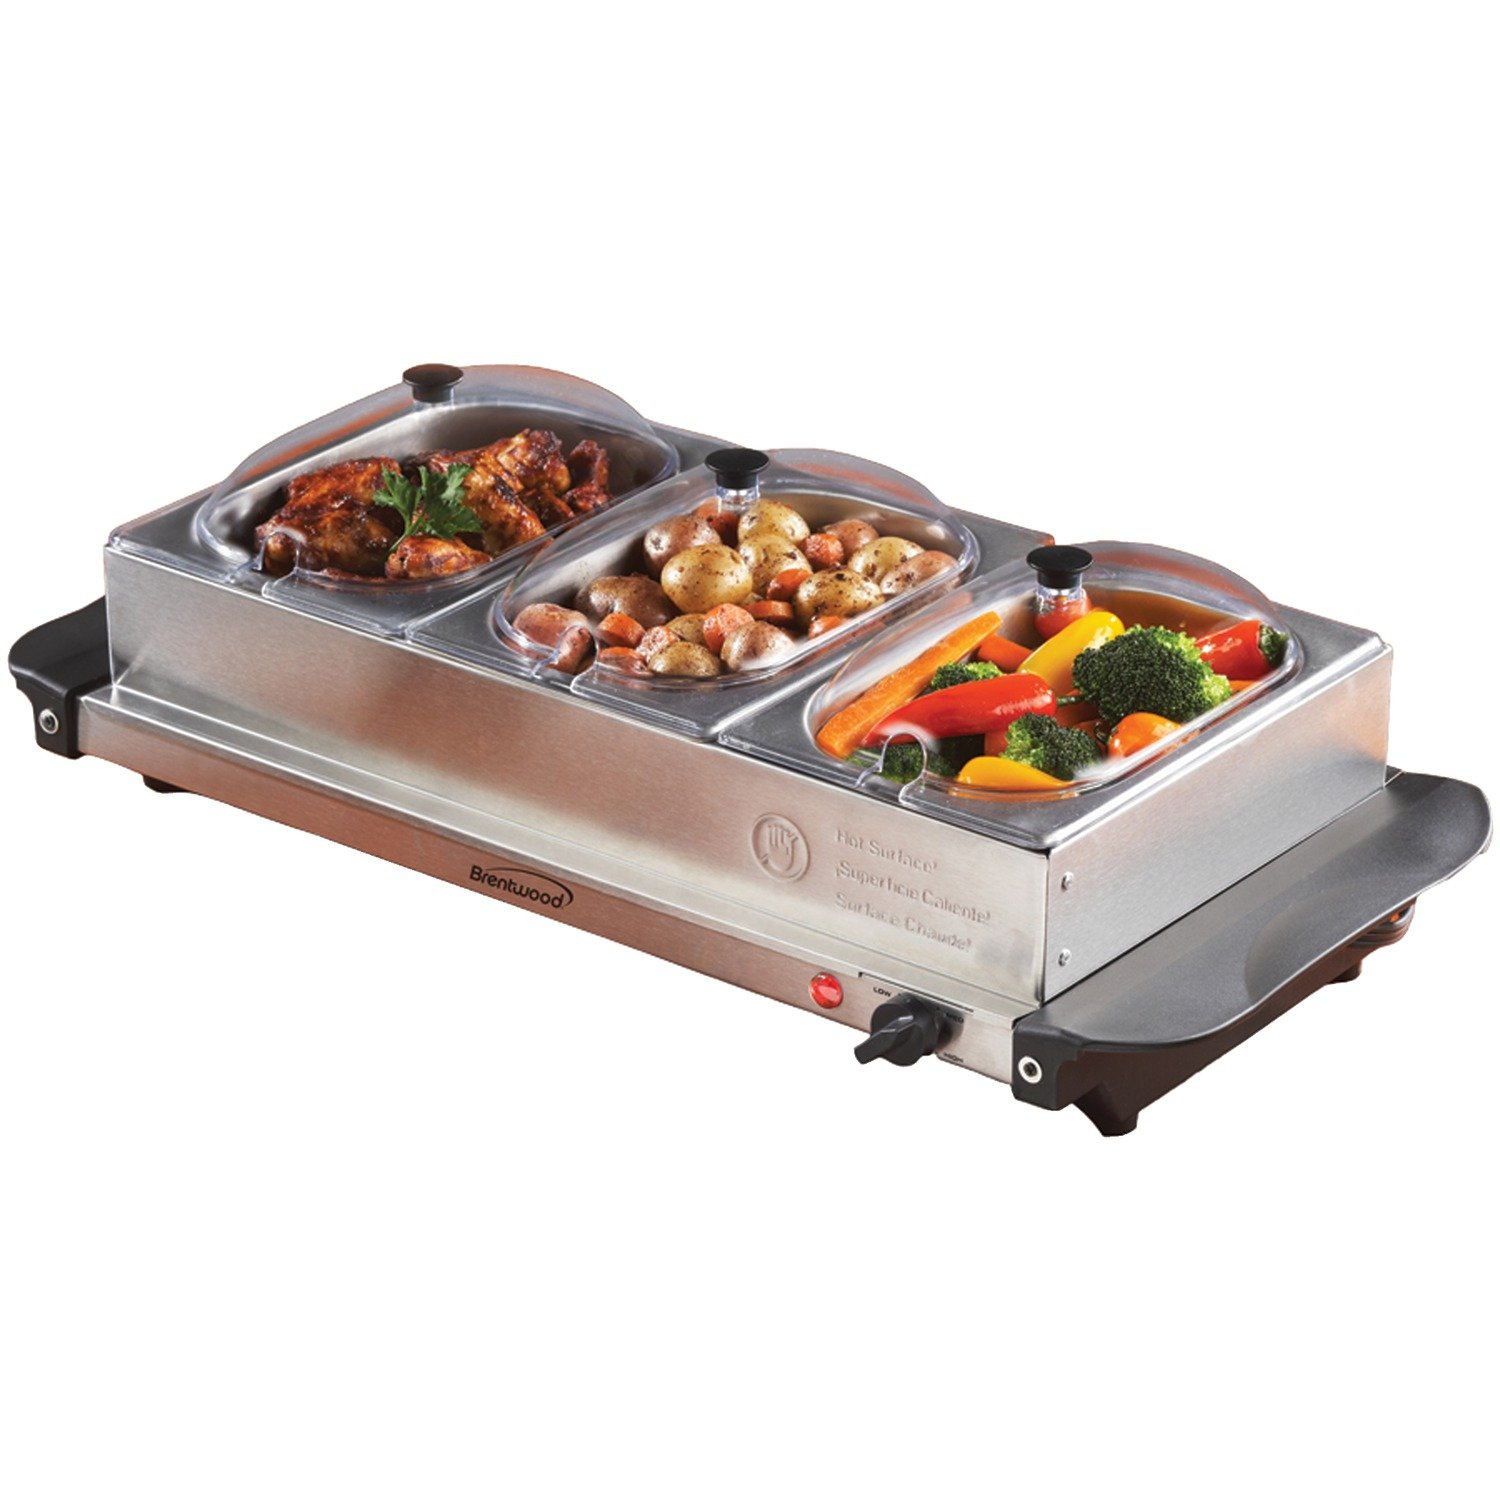 Brentwood BF-315 4.5-Quart 3 Pan Buffet Server and Warming Tray, Brushed Stainless Steel